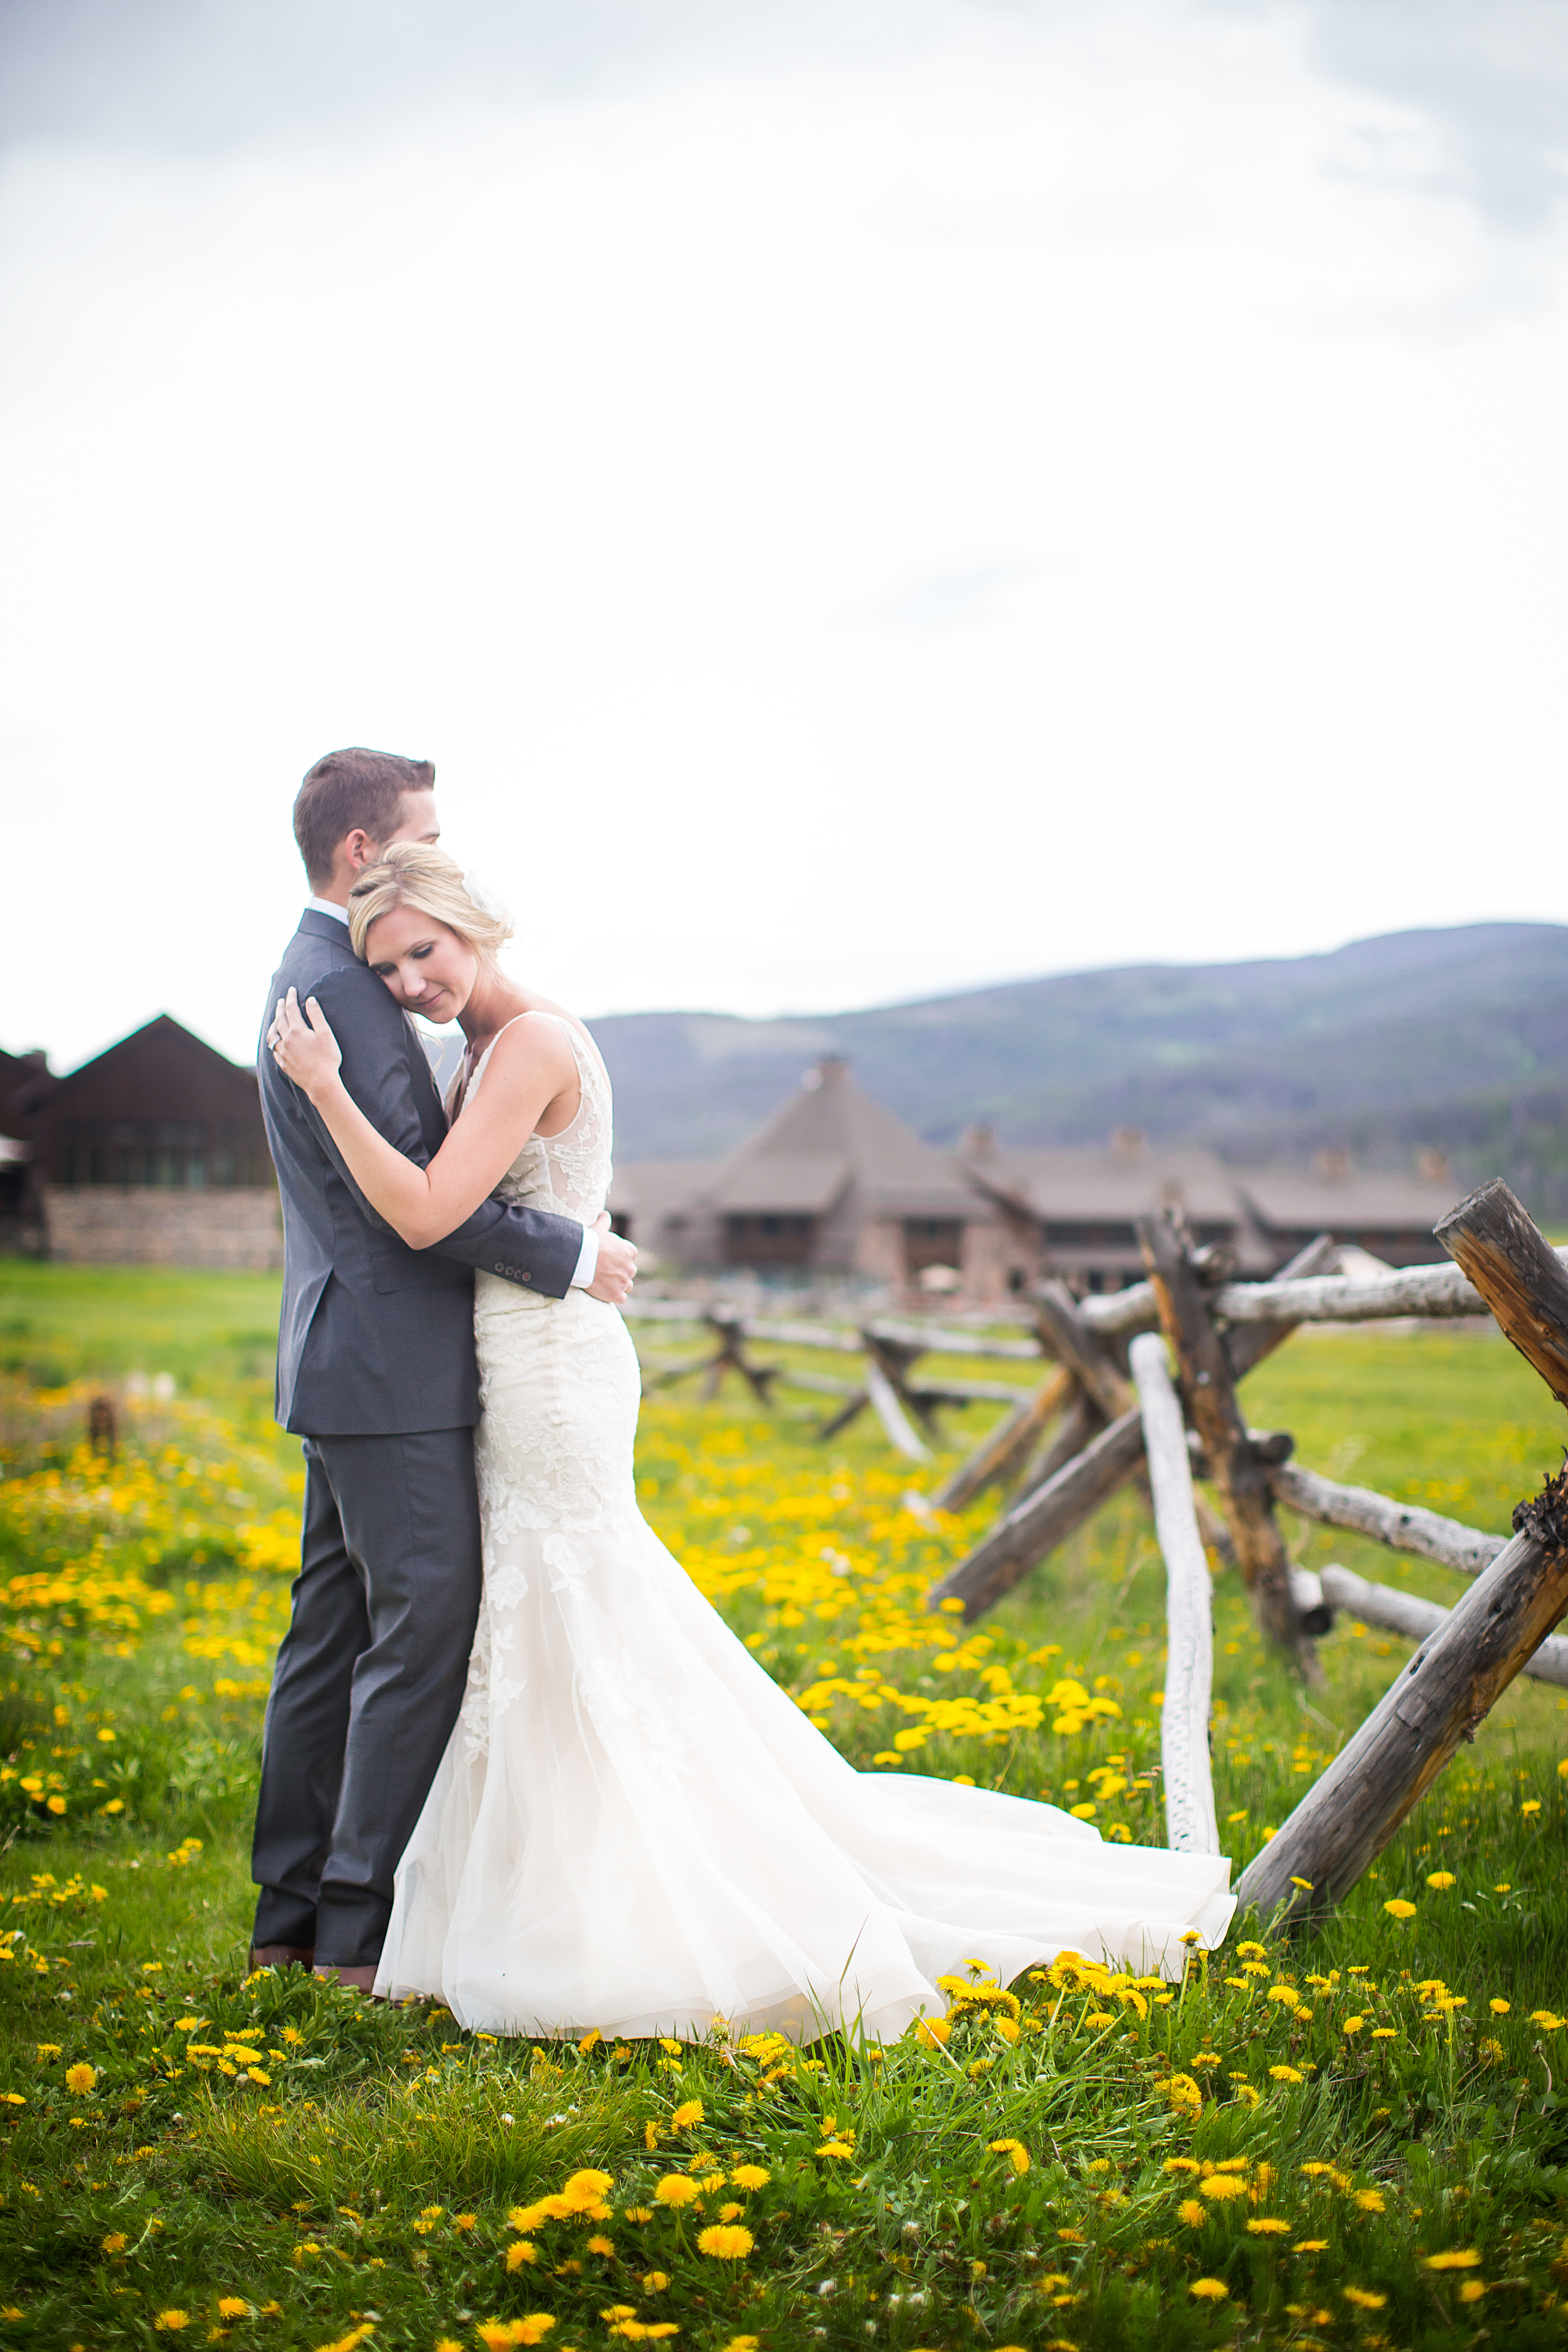 Carlie | June 14, 2015 | Devil's Thumb Ranch | Tabernash, Colorado |  Drake Busch Photography